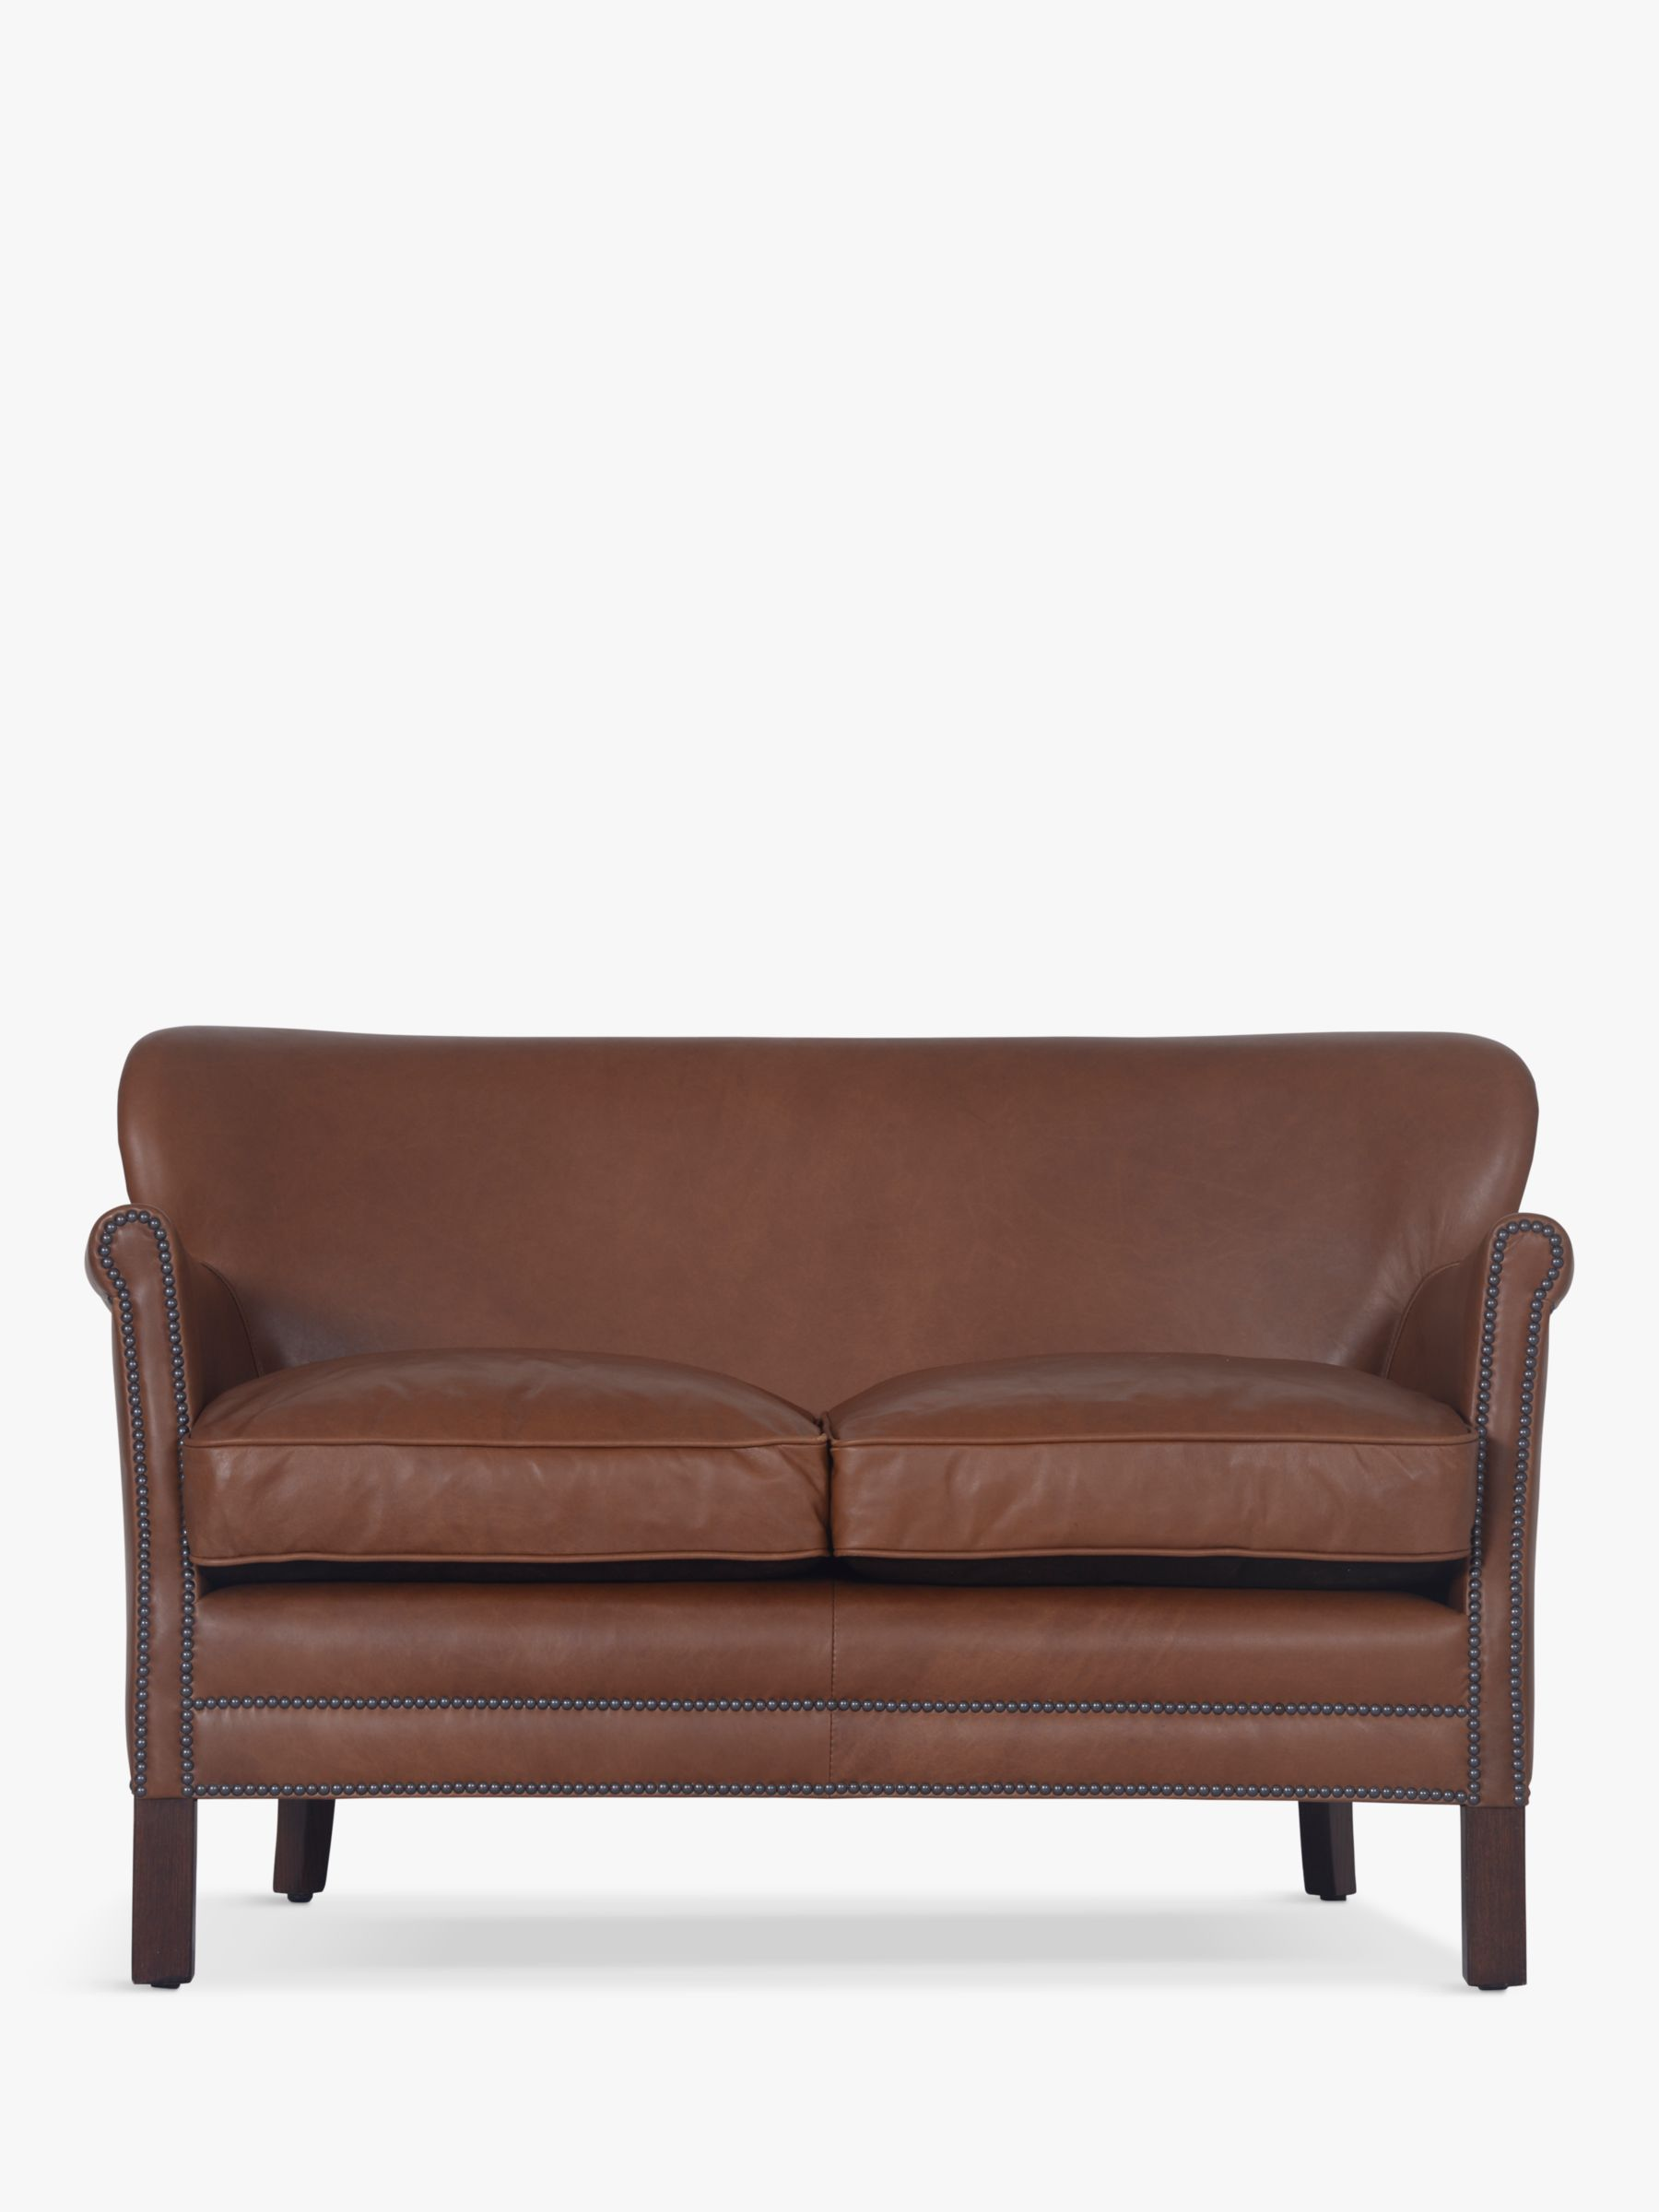 Halo Halo Little Professor Petite 2 Seater Leather Sofa